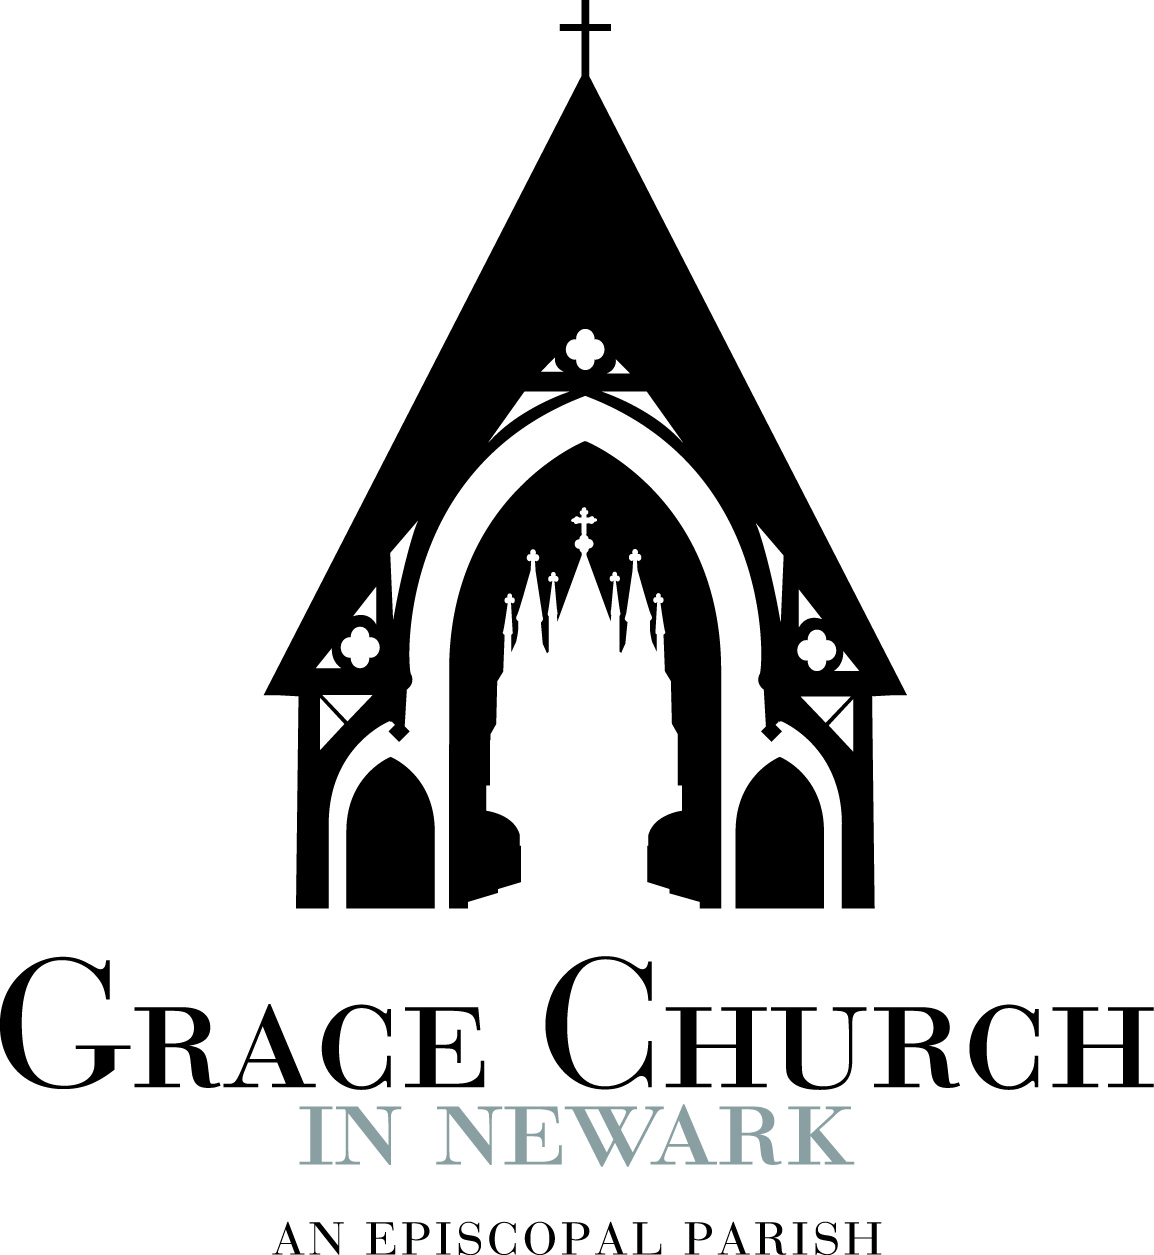 Grace Church in Newark.